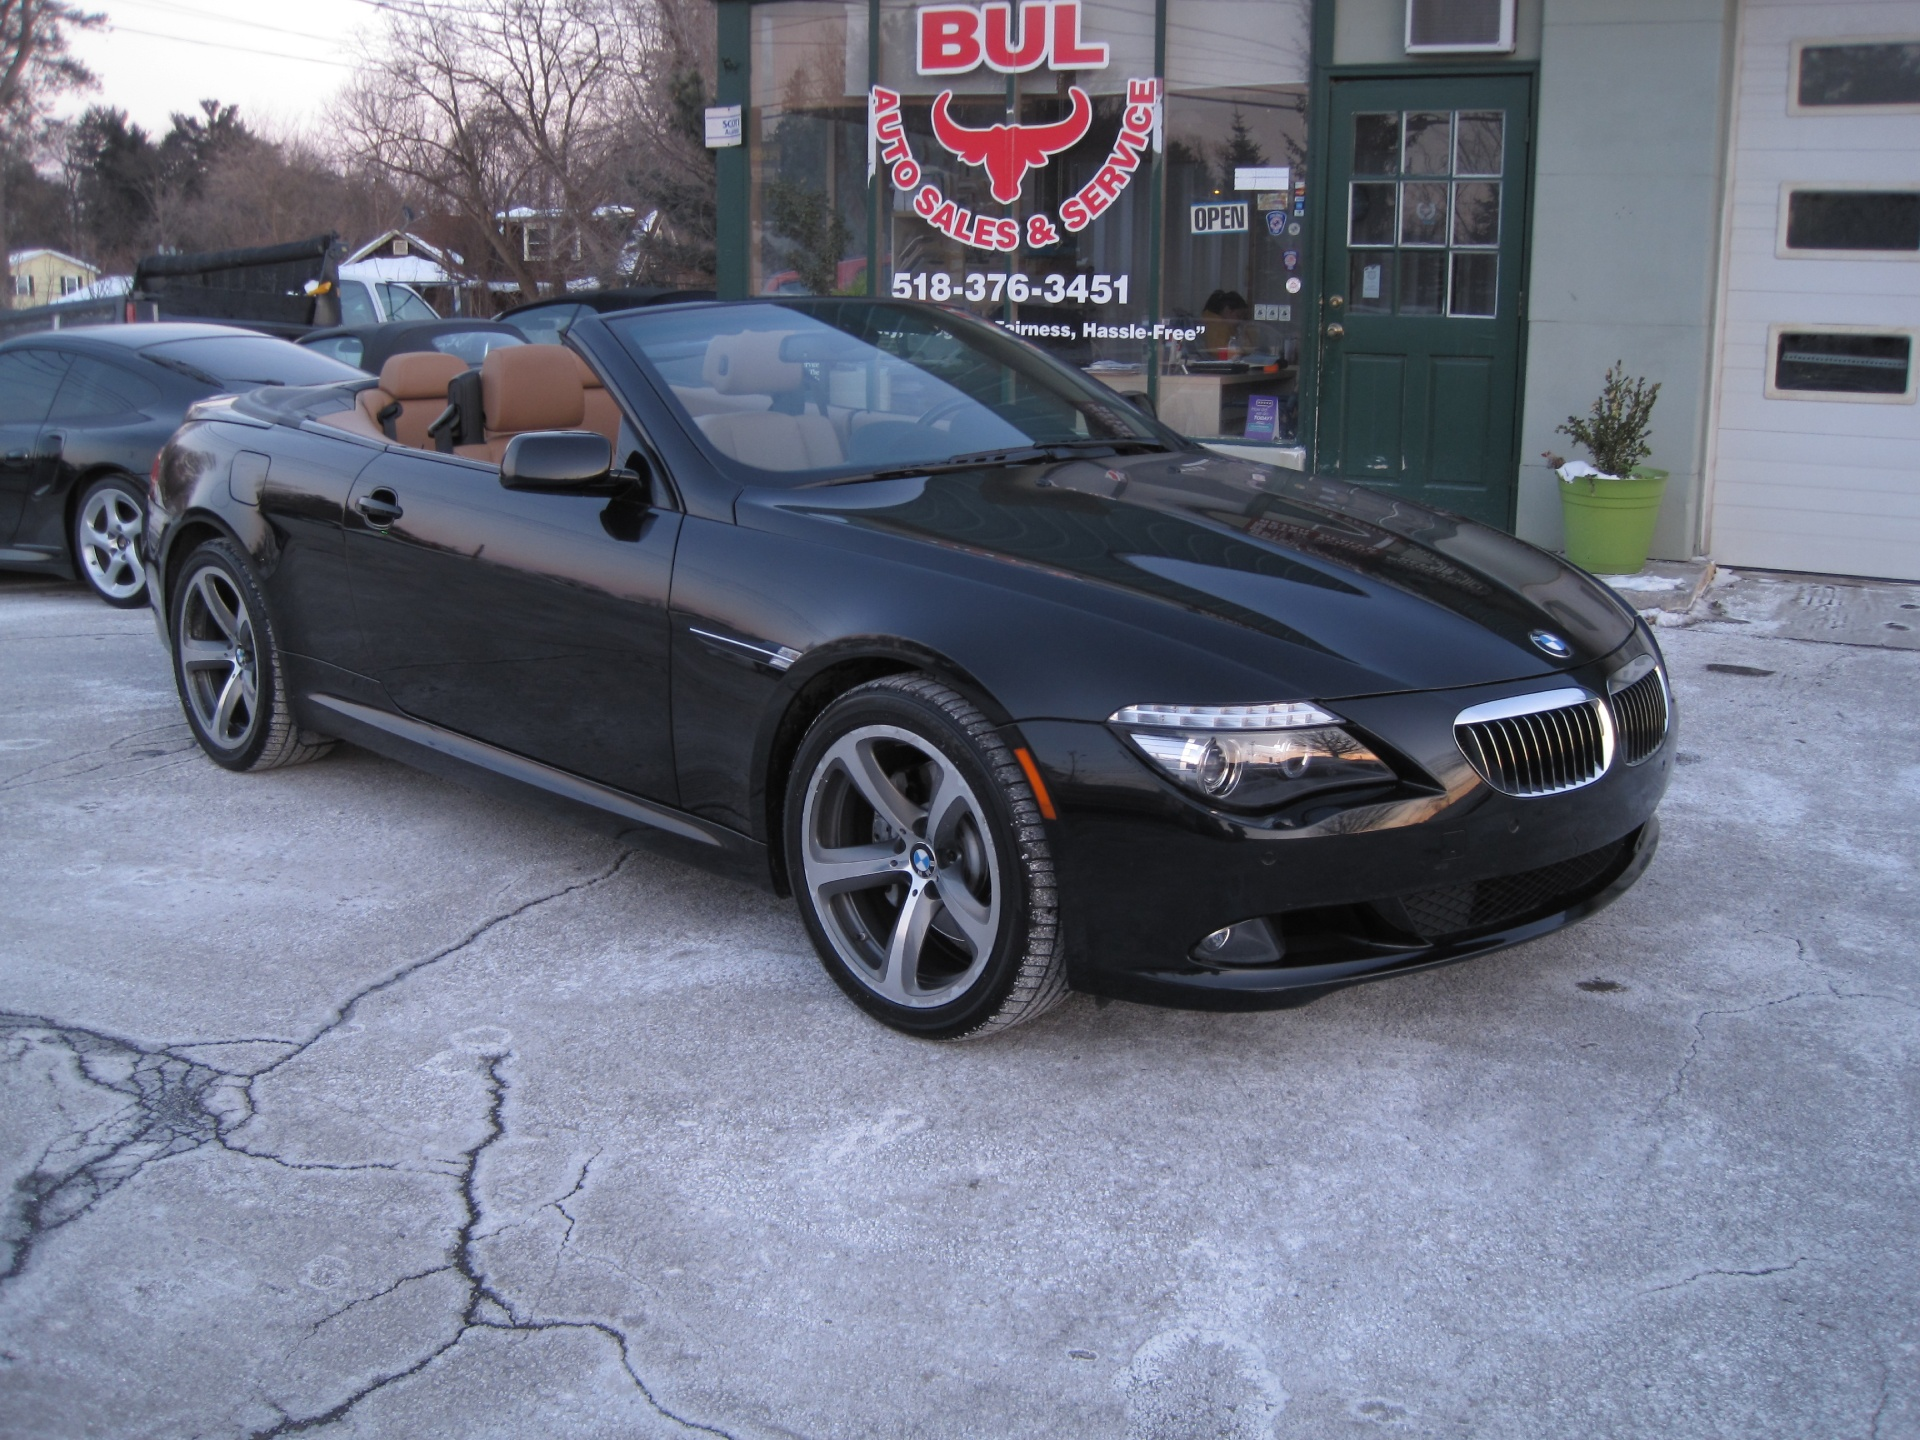 convertible cars for sale near me fresh cars for sale near me convertible elegant 2009 bmw 6. Black Bedroom Furniture Sets. Home Design Ideas